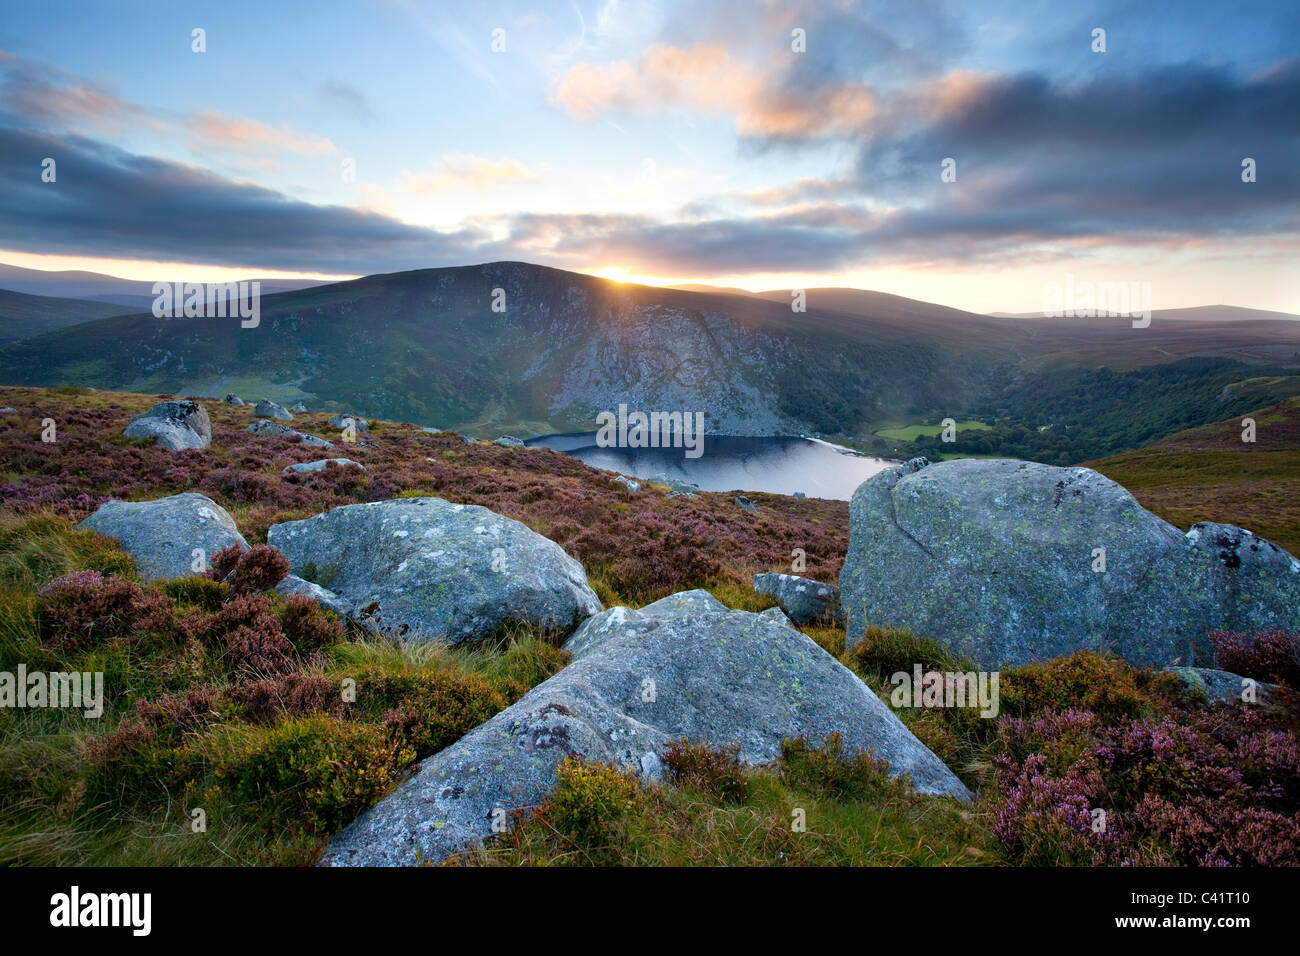 Sunset over Lough Tay, Wicklow Mountains National Park, County Wicklow, Ireland. - Stock Image